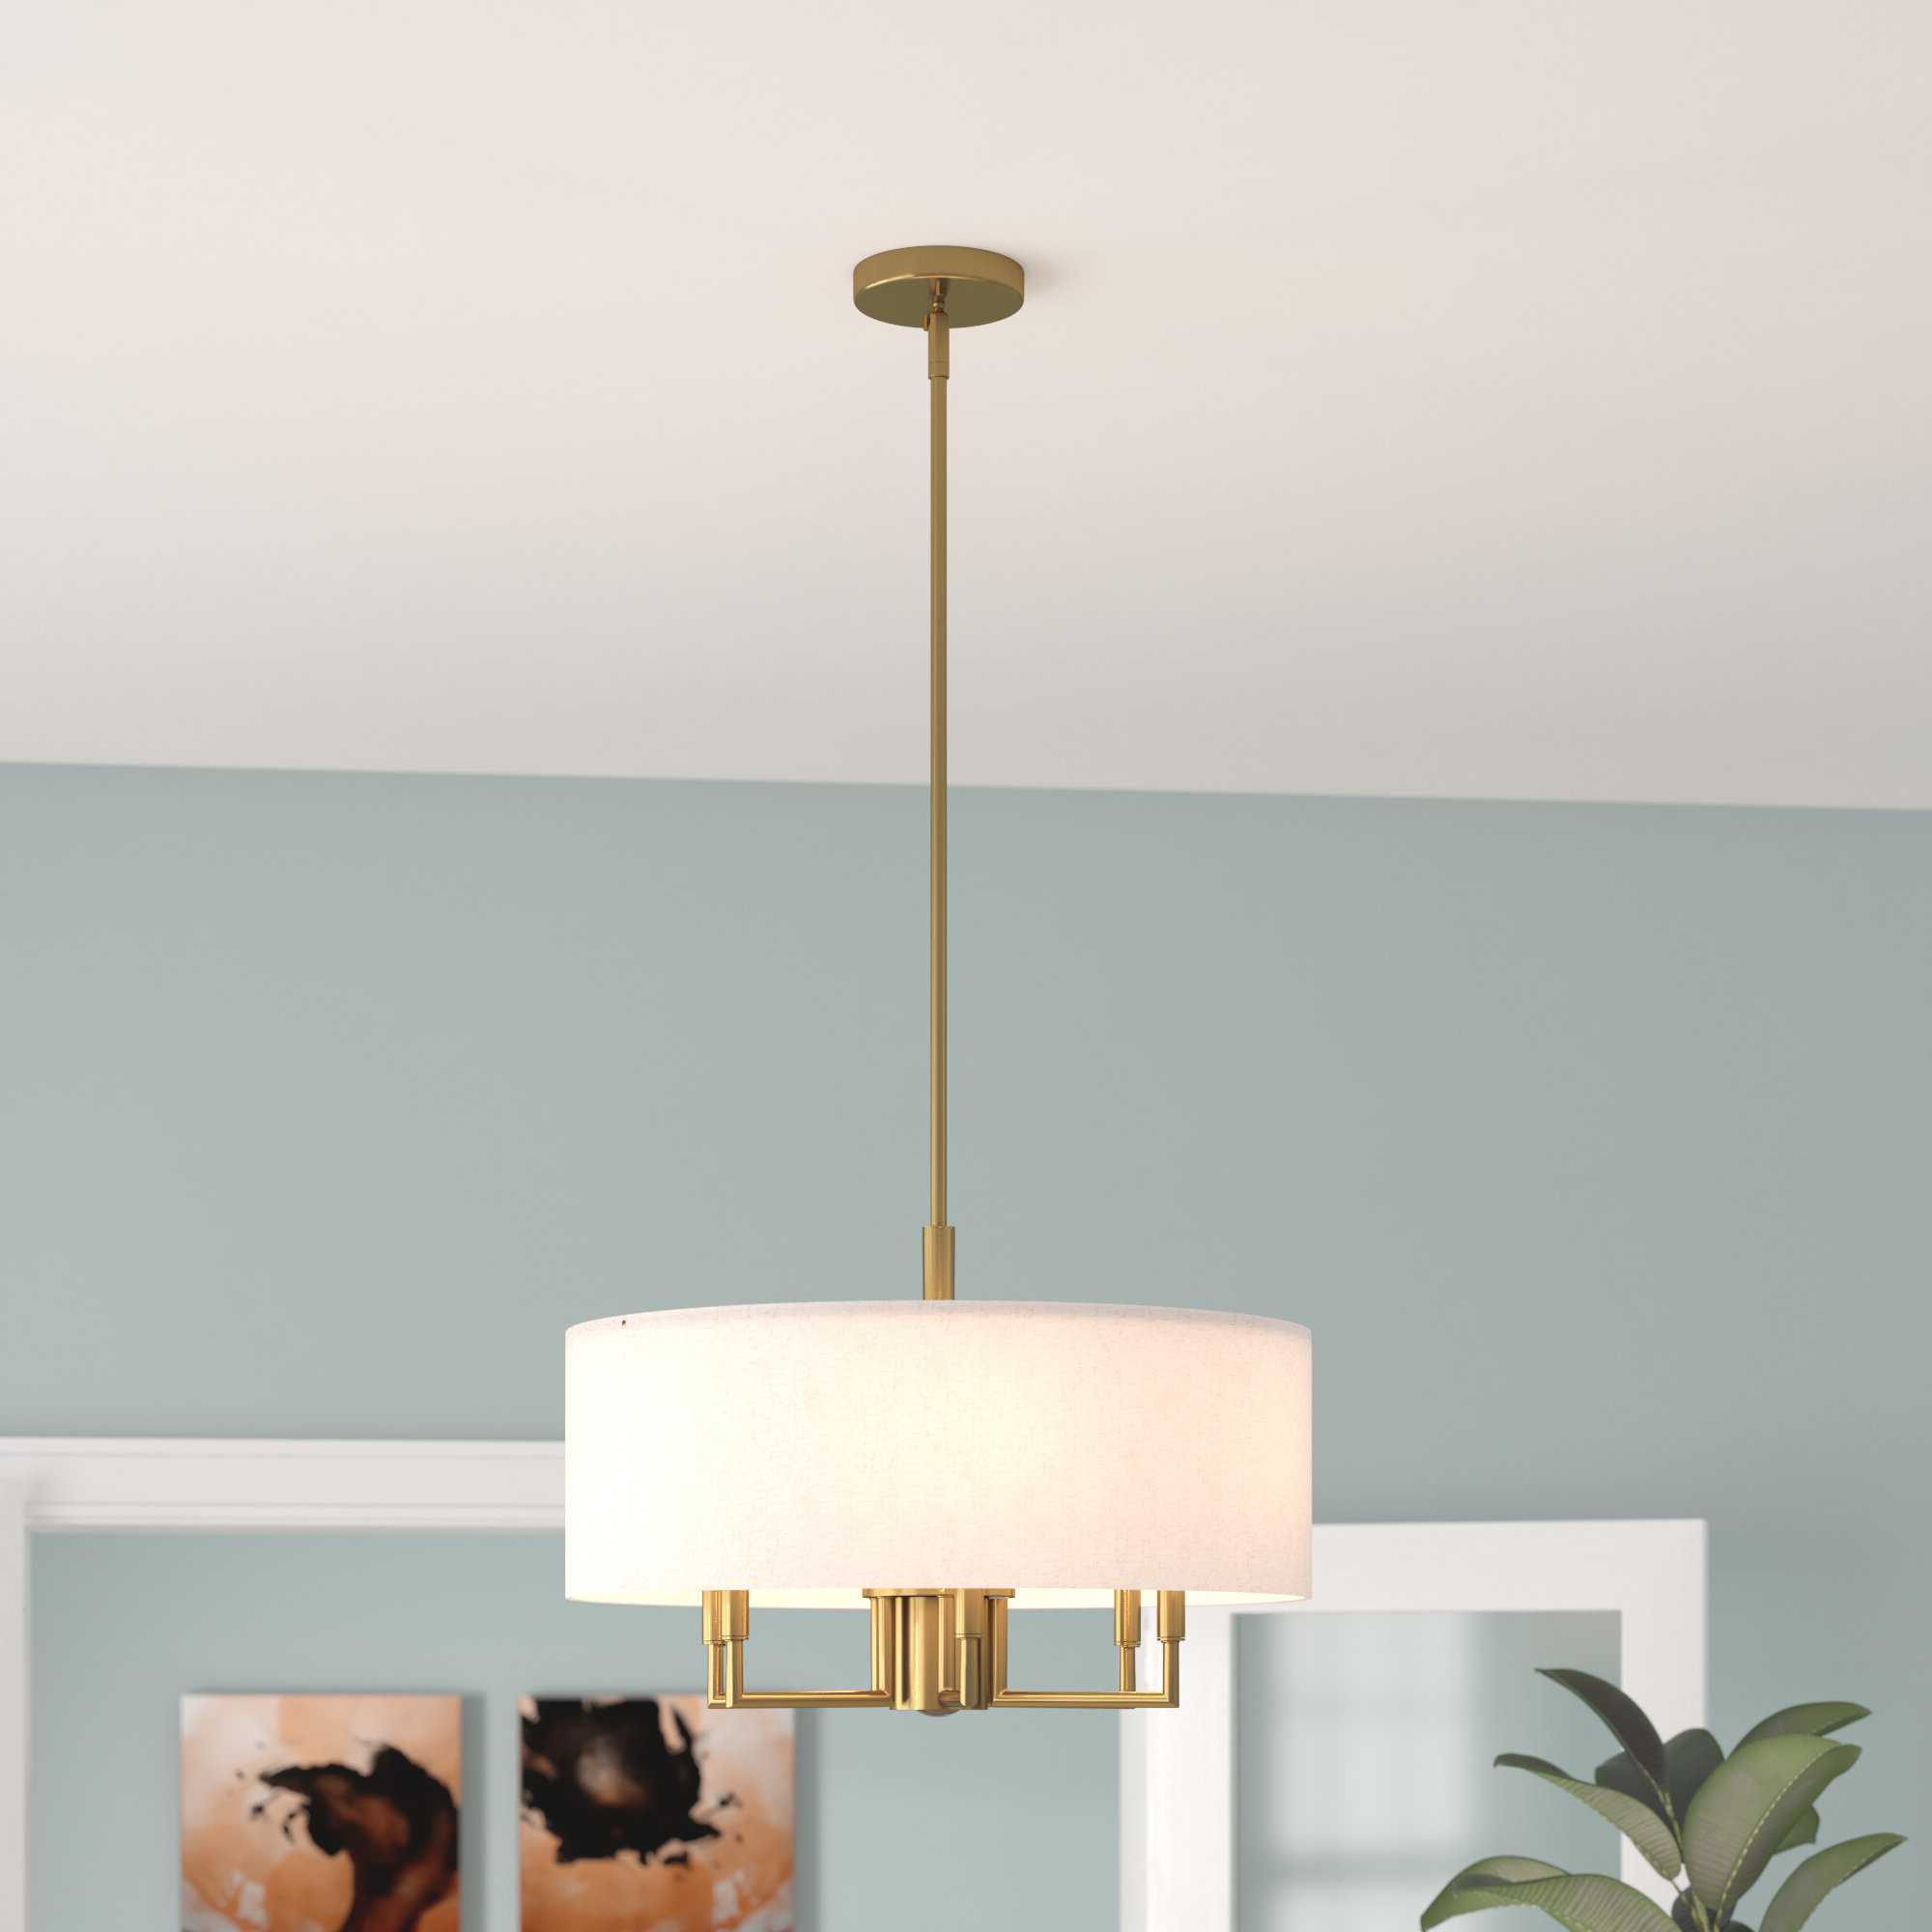 Alina 5 Light Drum Chandeliers Pertaining To Well Liked Ivy Bronx Alina 6 Light Drum Chandelier & Reviews (View 7 of 20)